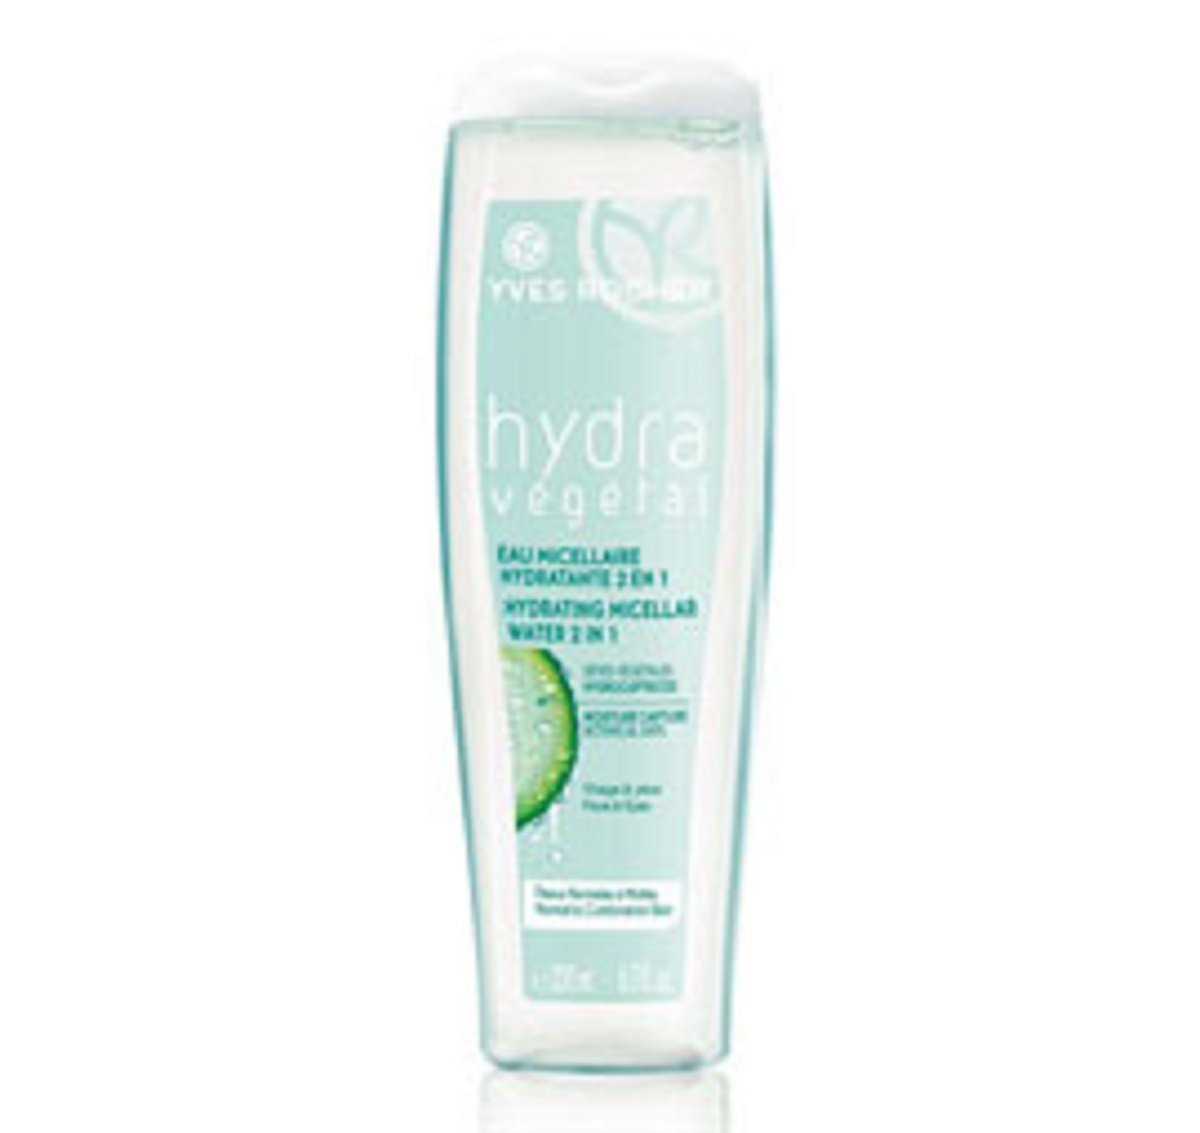 Yves Rocher Hydrating Cleansing Milk 200ml